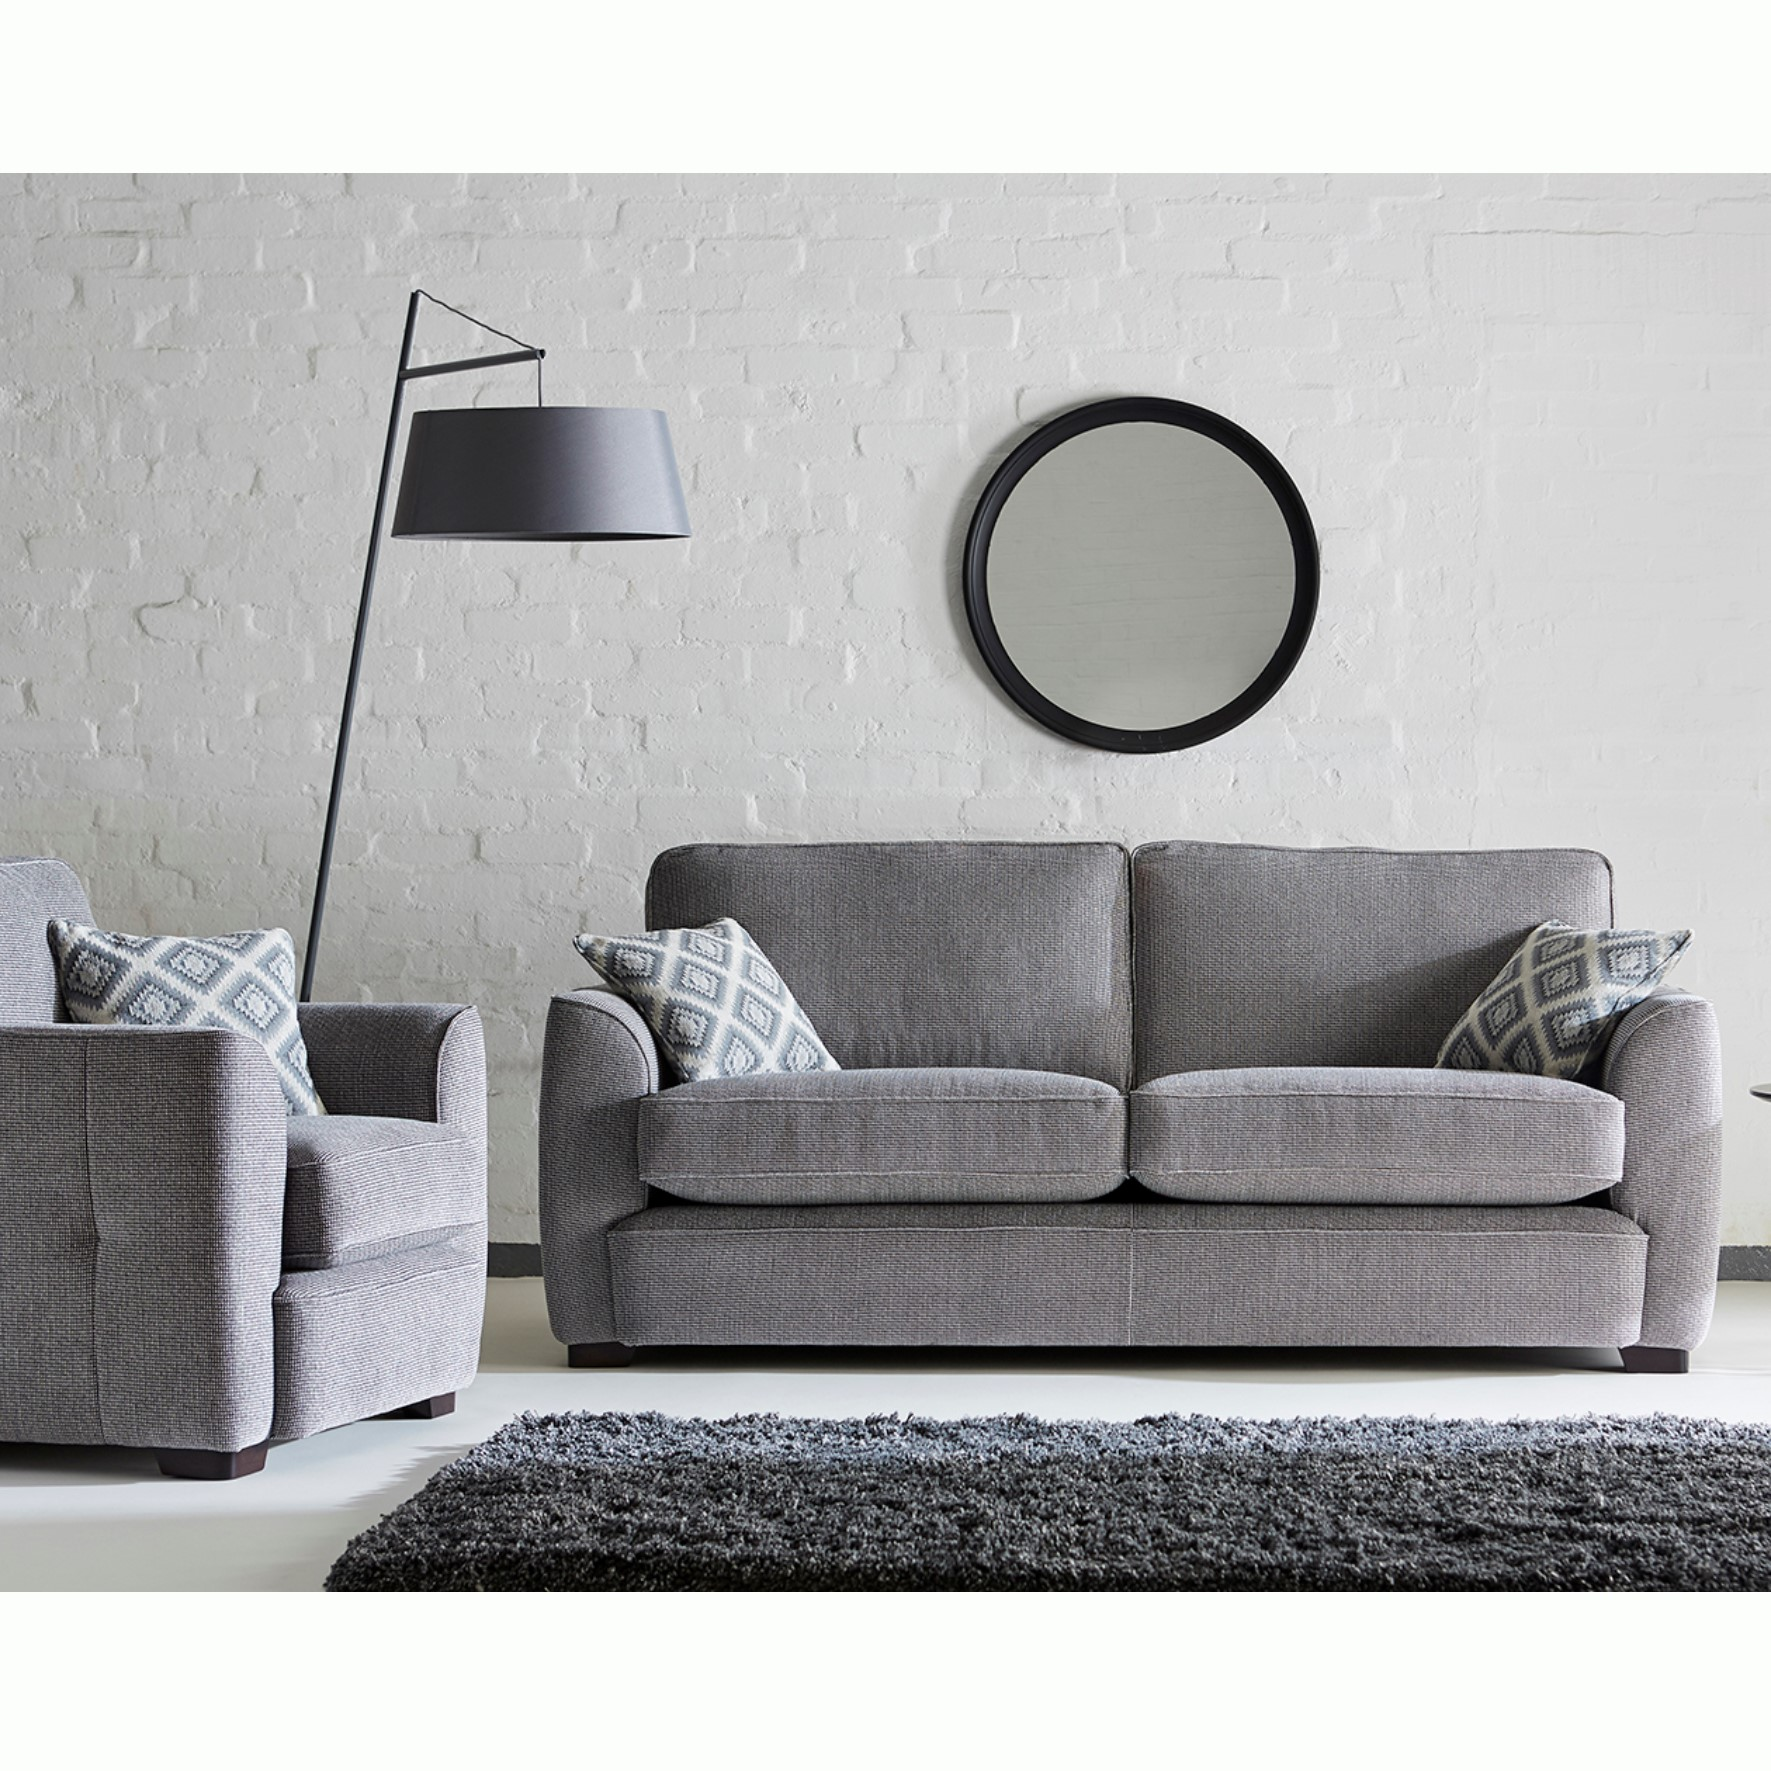 The Primrose Sofa Collection